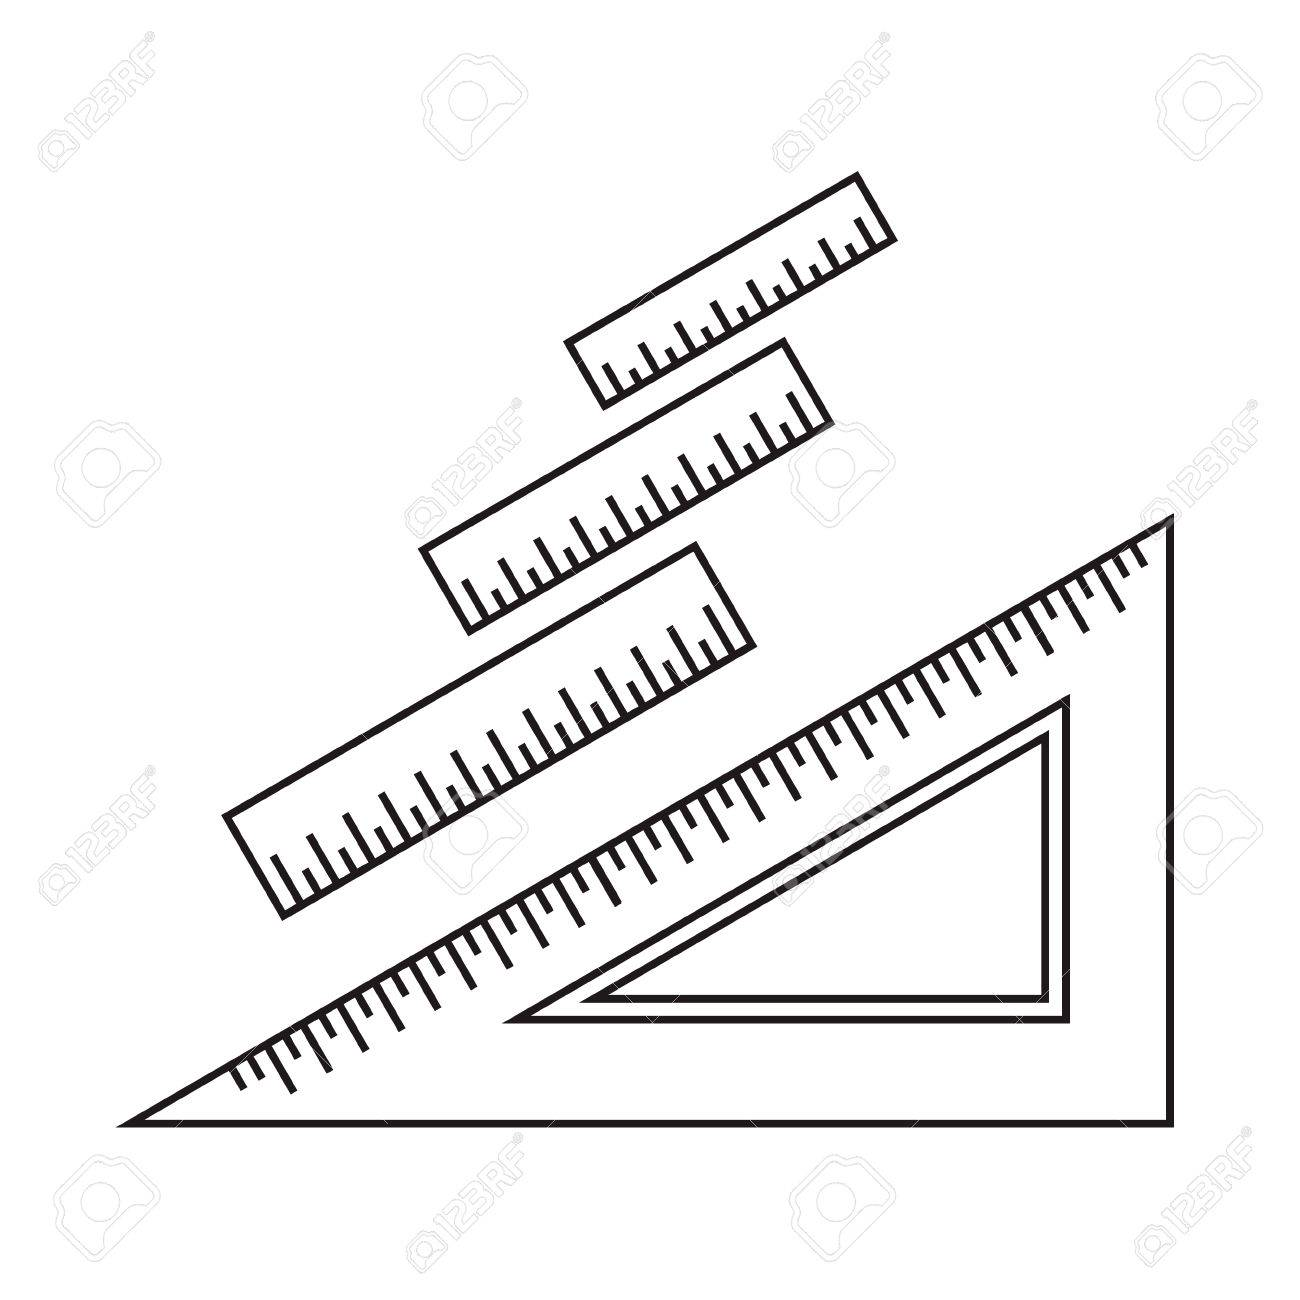 Ruler icon. Ruler symbol. Office Supply Objects. Flat Vector illustration. - 46353991